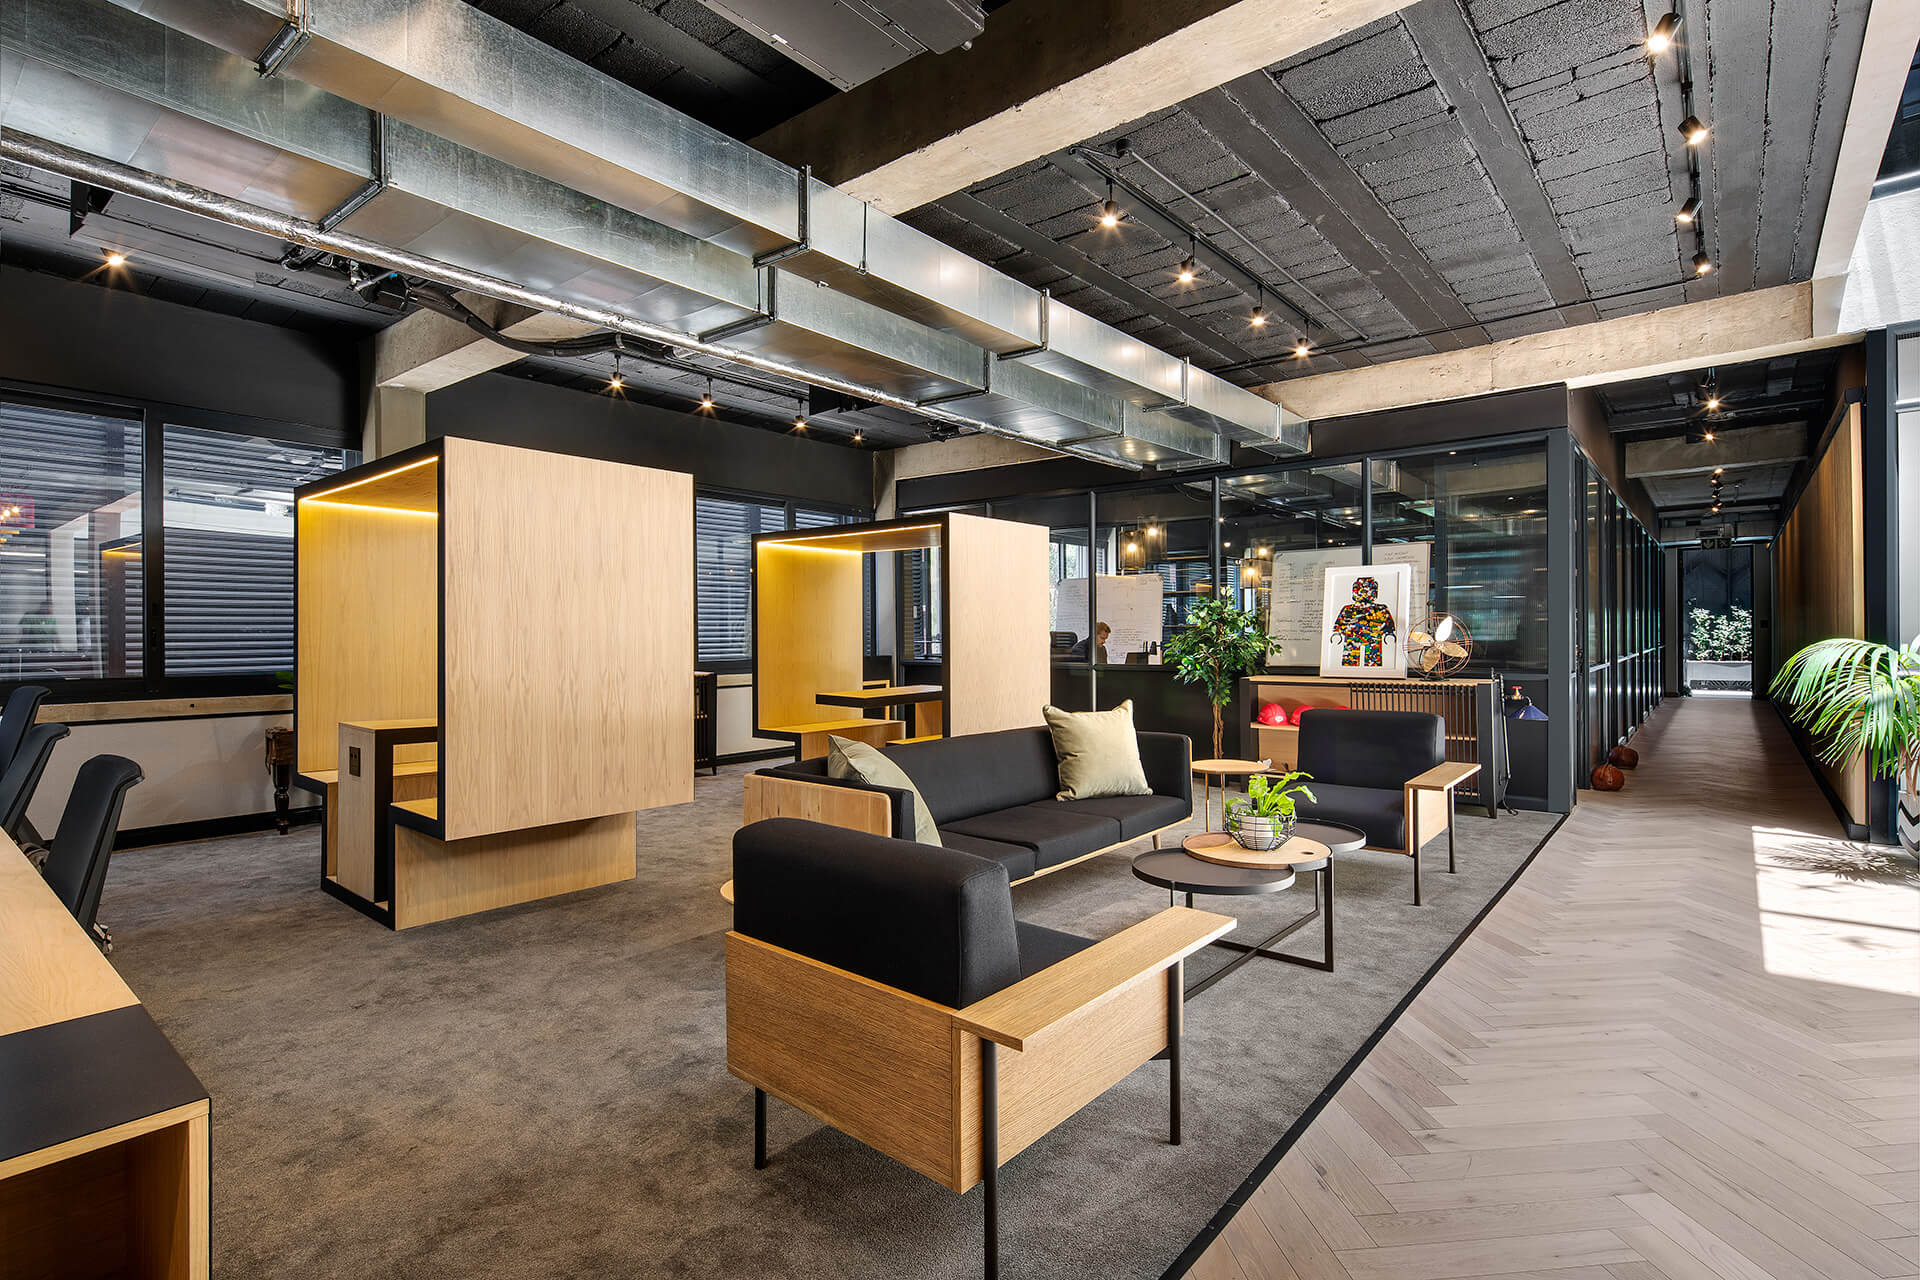 Commercial spaces on the upper floor | 78 Corlett Drive | Daffonchio and Associates Architects | STIRworld